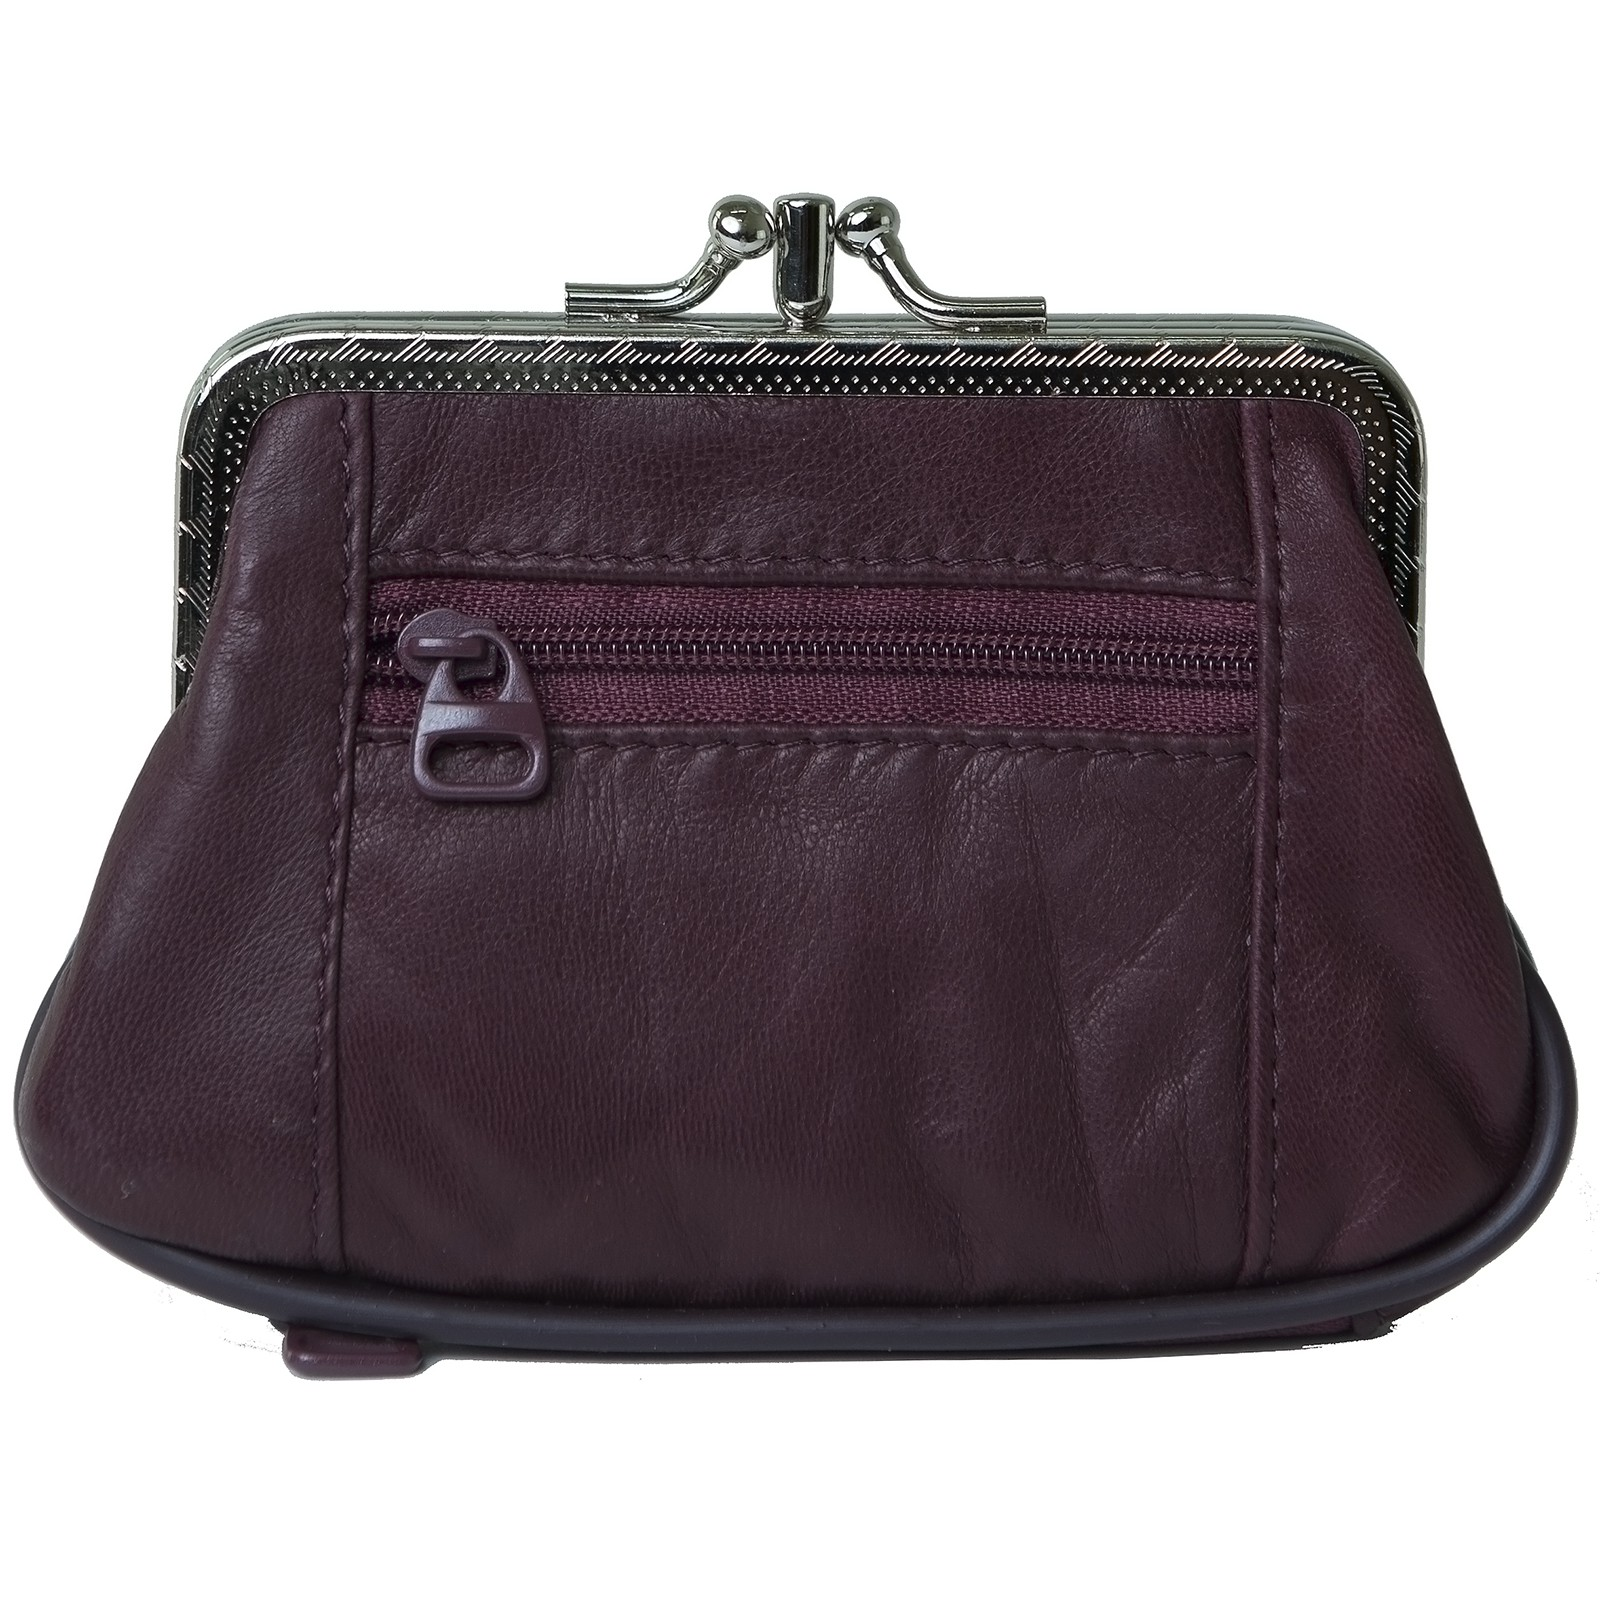 Women S Billfold With Coin Purse Jaguar Clubs Of North